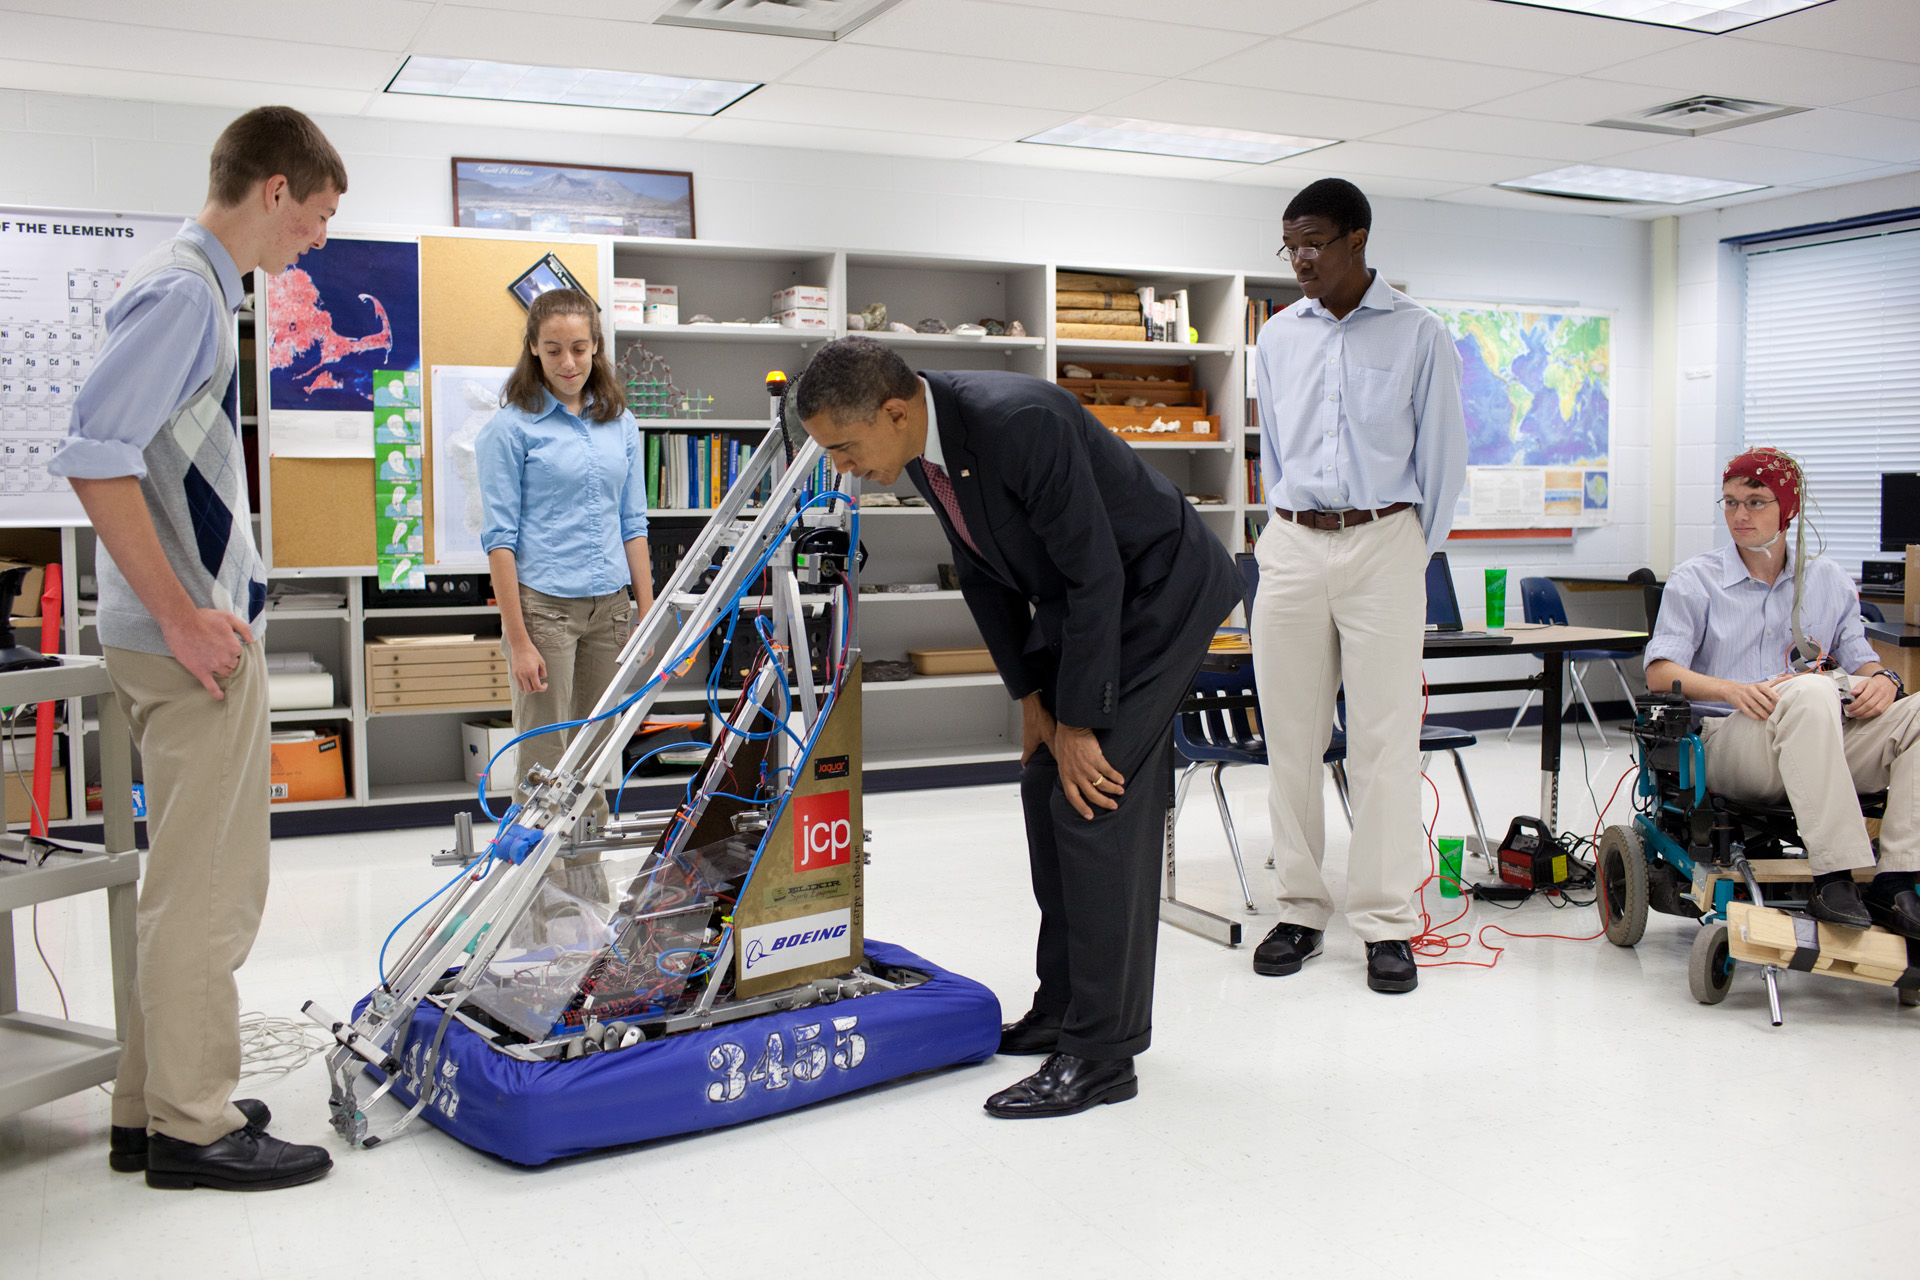 President Obama at Thomas Jefferson High School for Science and Technology